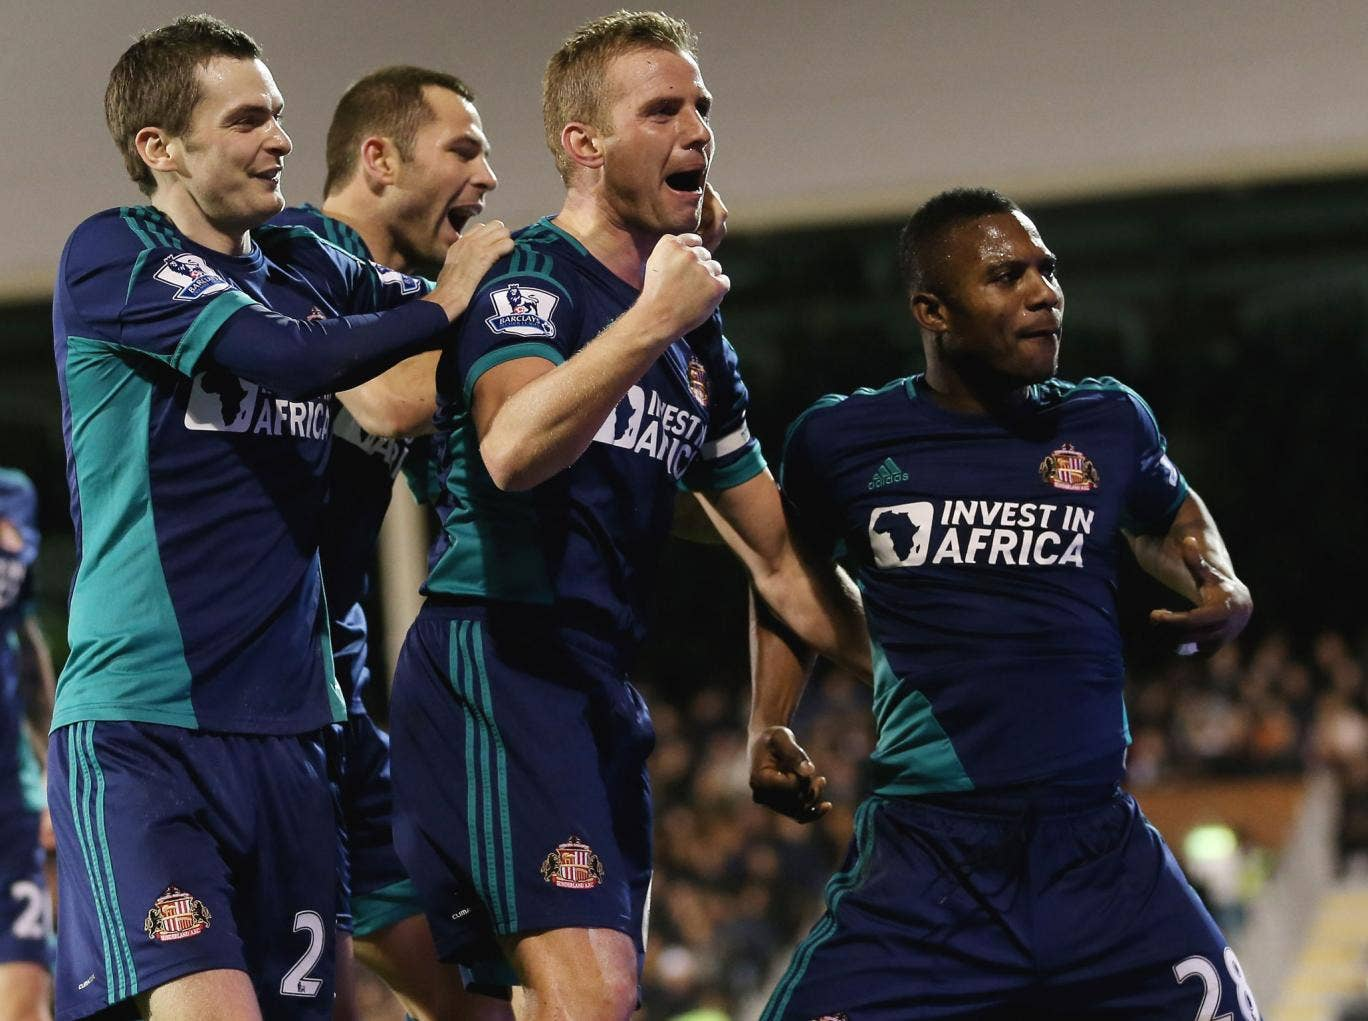 Stephane Sessegnon (far right) celebrates with his teammates